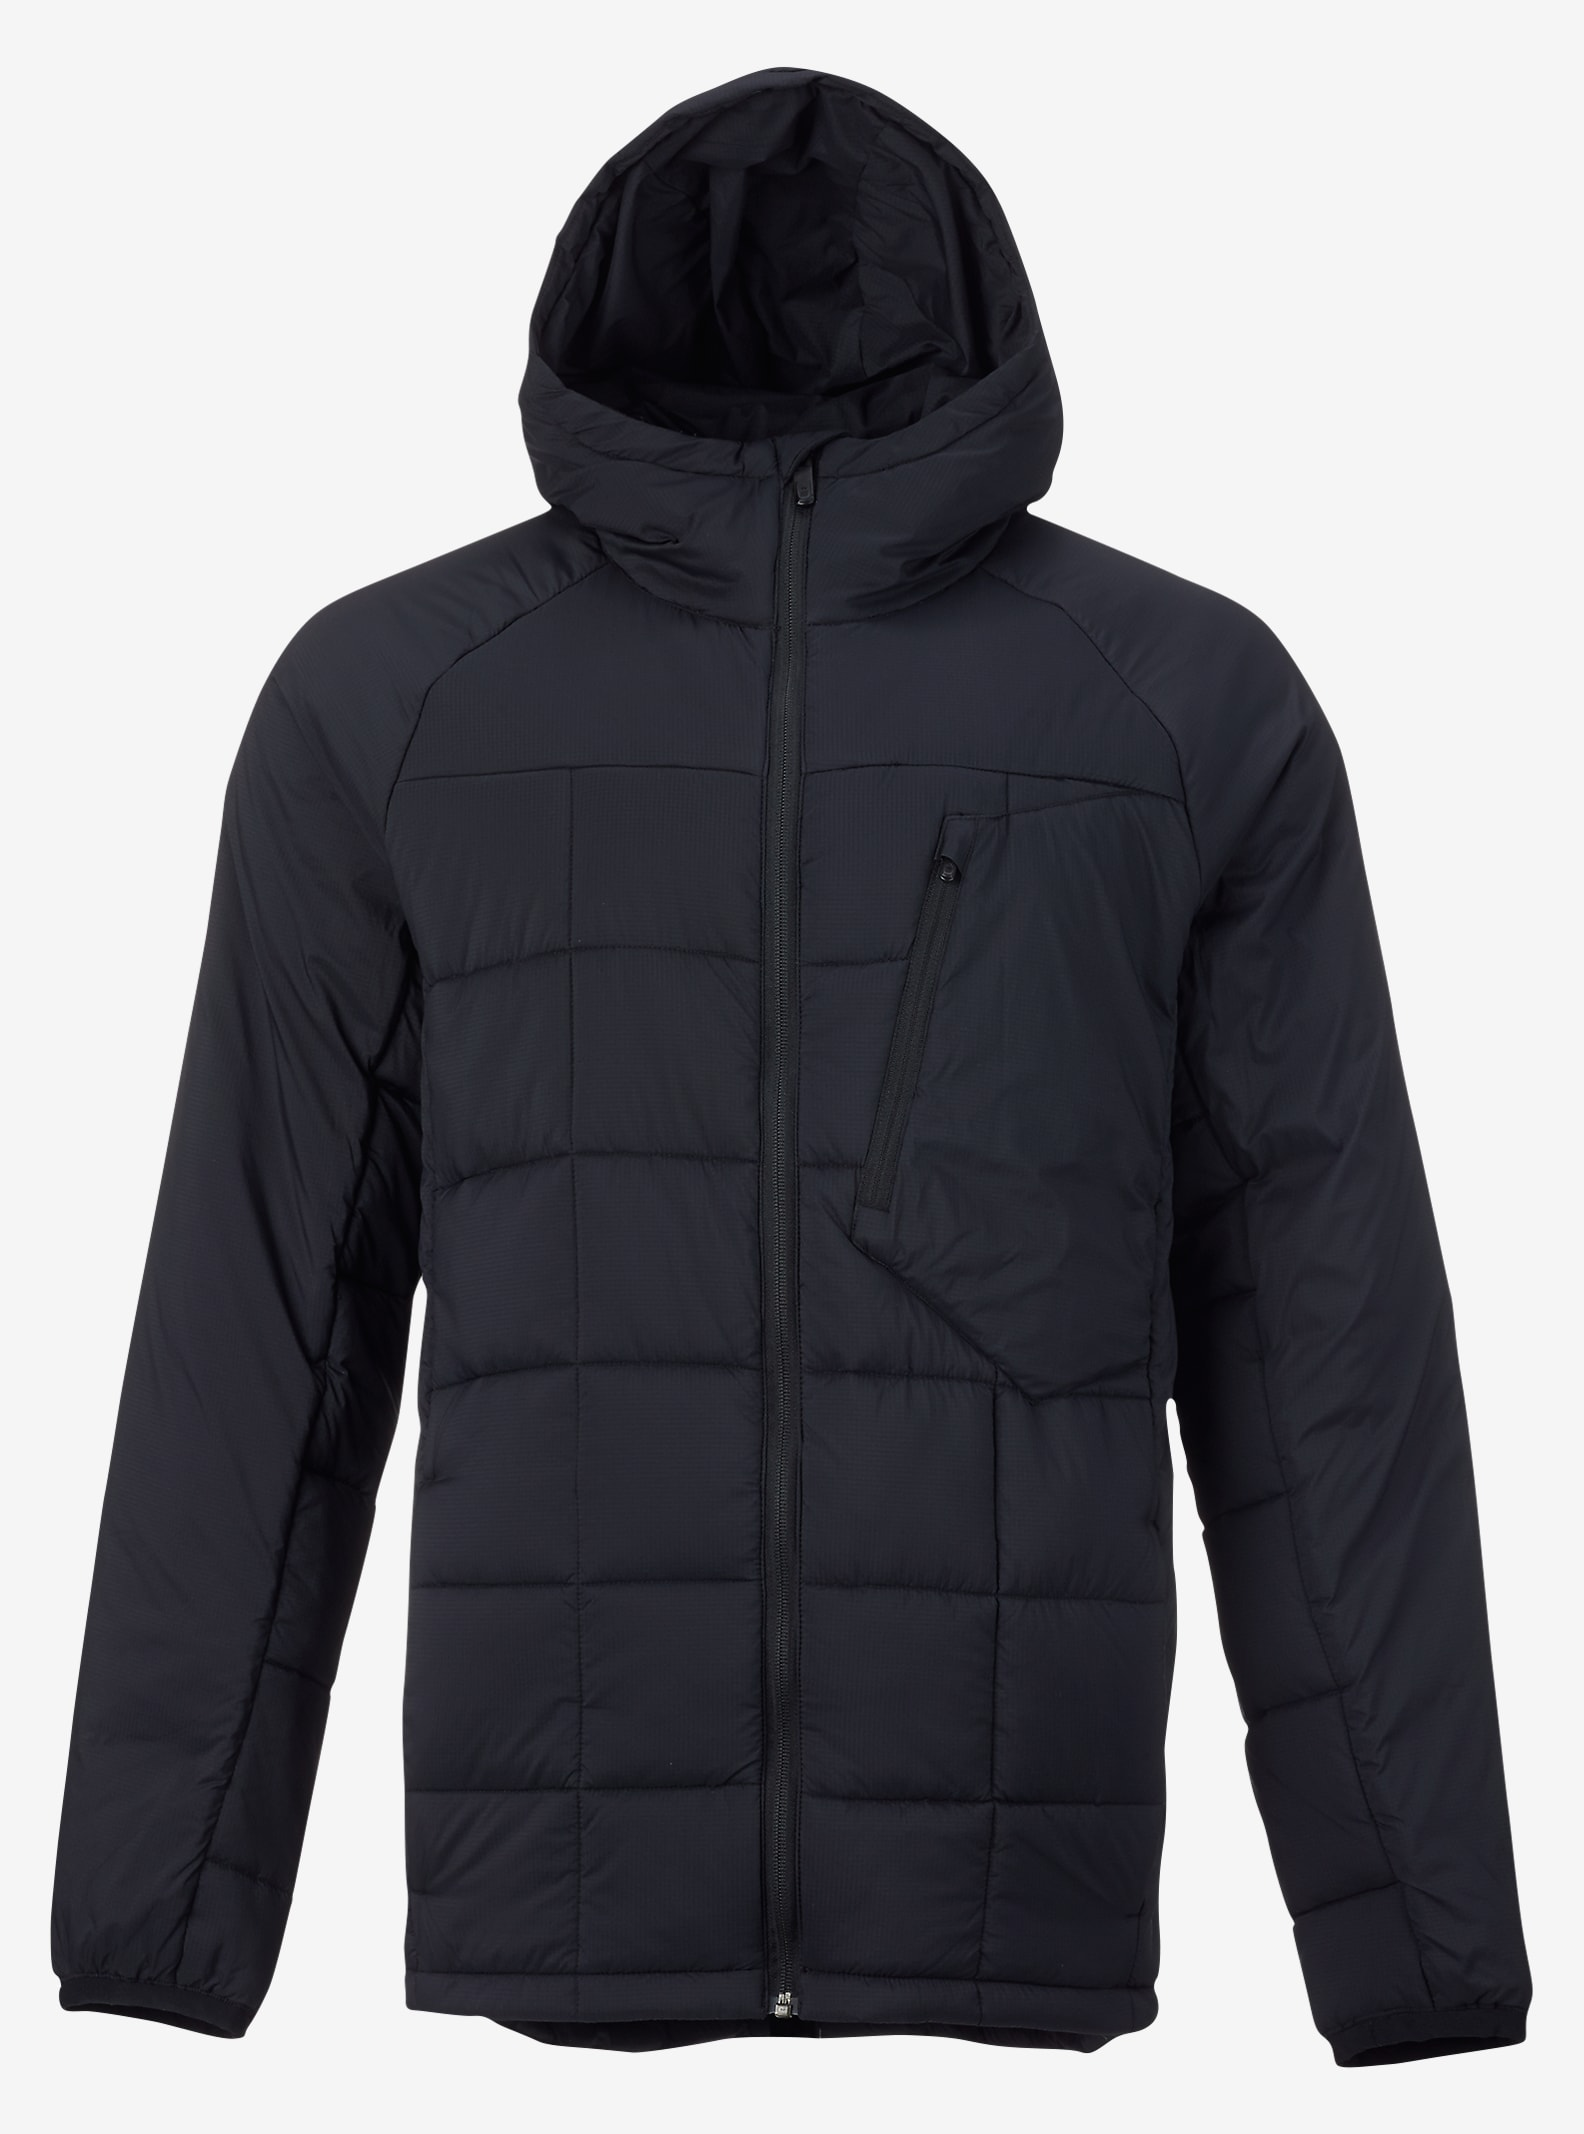 Burton - Manteau isolant [ak] NH affichage en True Black